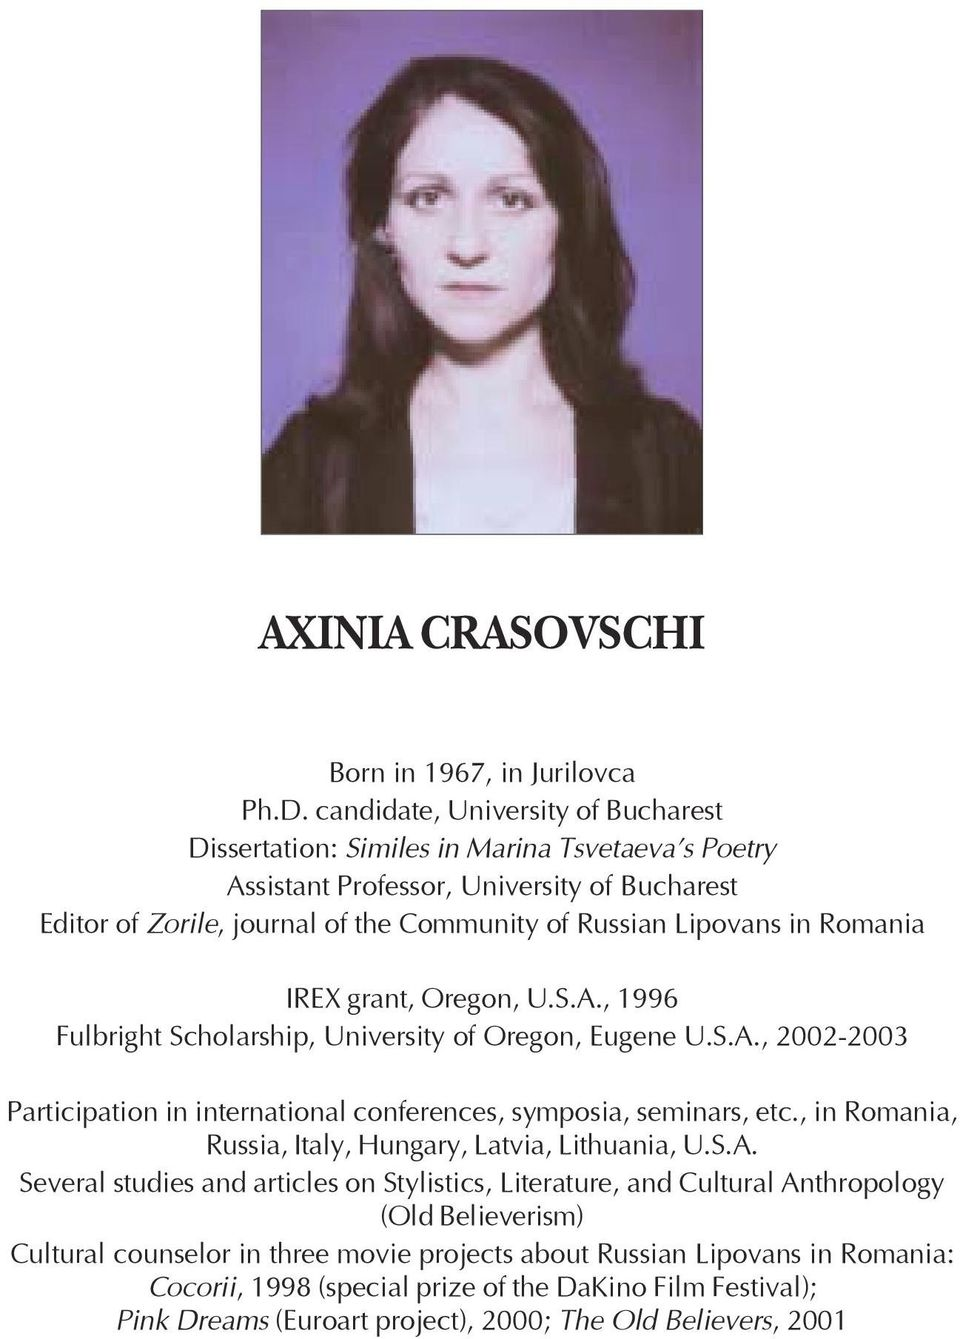 Romania IREX grant, Oregon, U.S.A., 1996 Fulbright Scholarship, University of Oregon, Eugene U.S.A., 2002-2003 Participation in international conferences, symposia, seminars, etc.